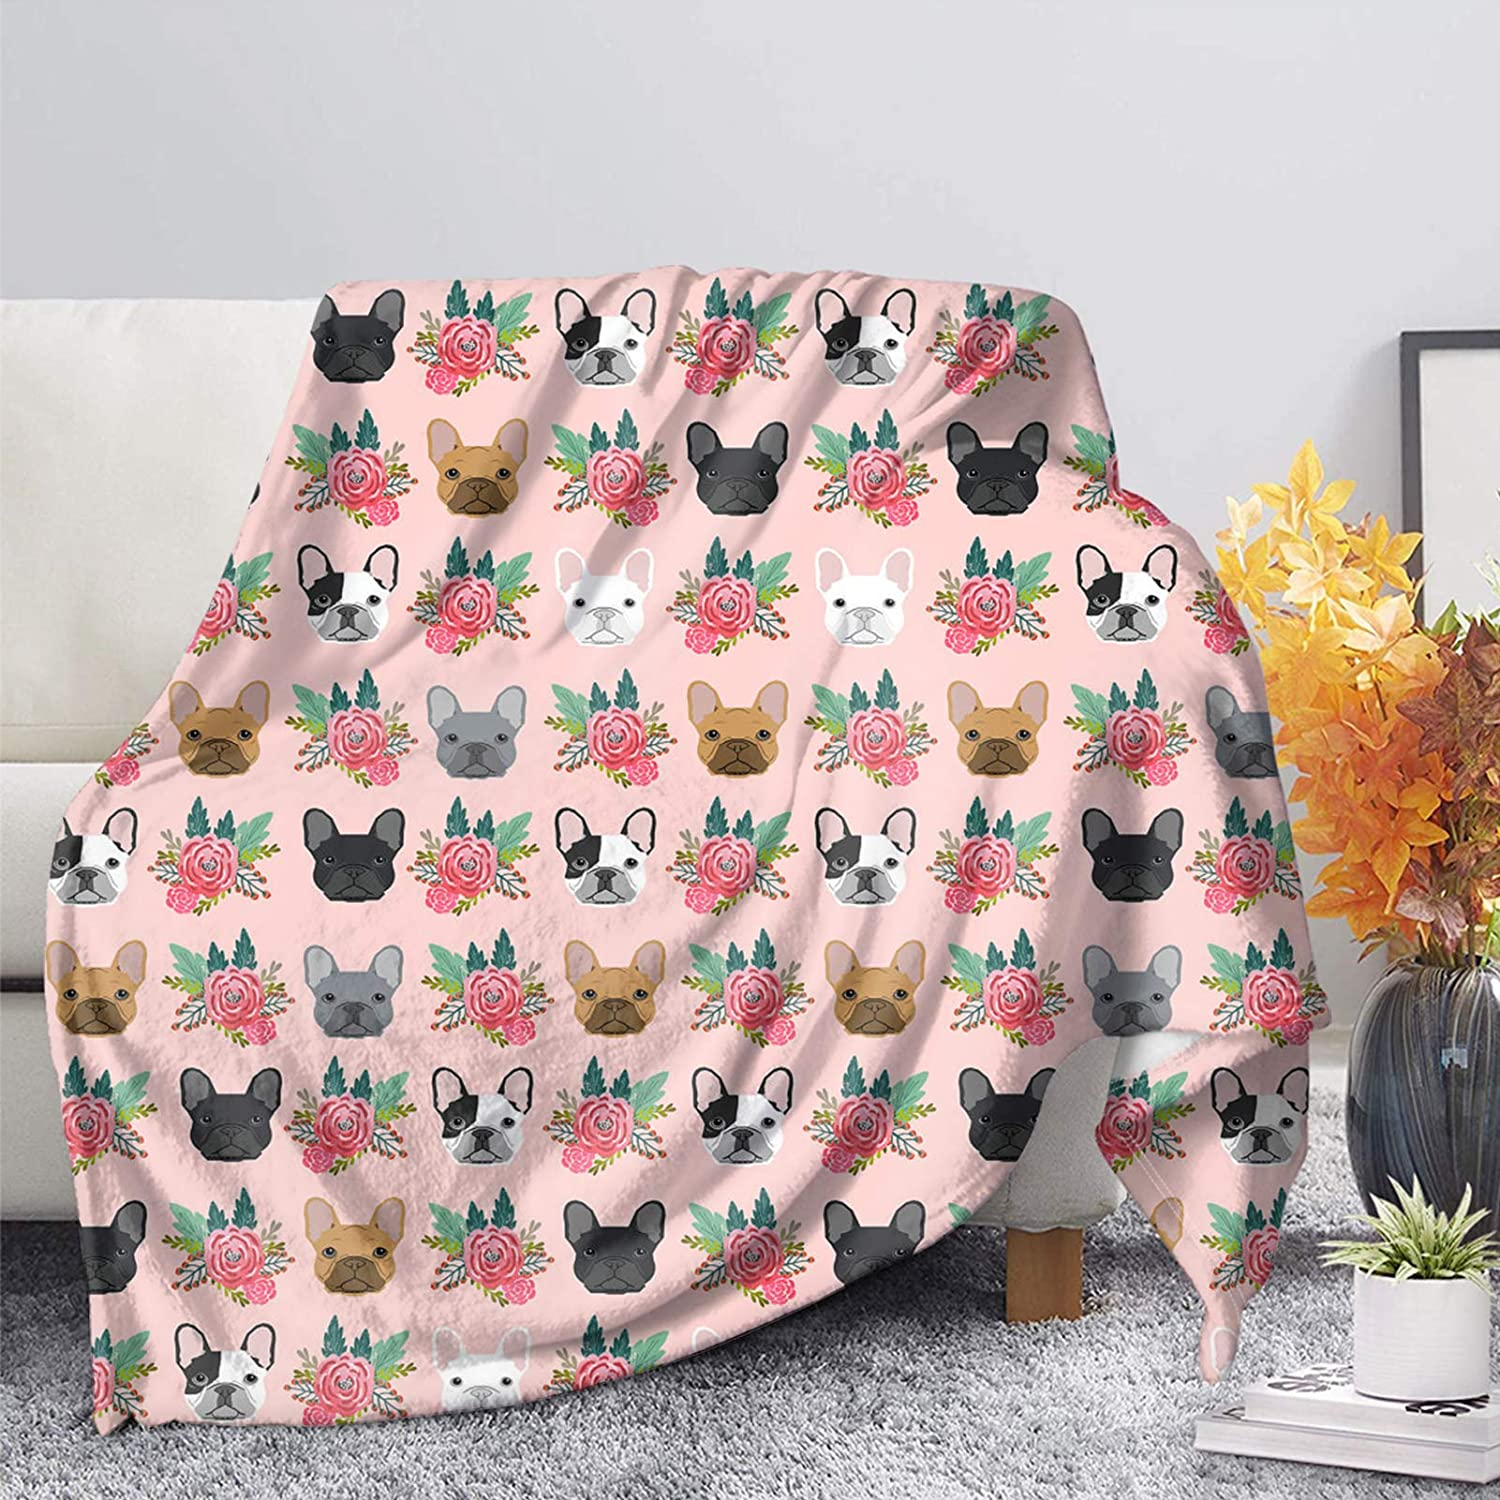 COEQINE Flannel Throw 5 ☆ popular Blanket for Bed Max 77% OFF Floral Patte Bulldog Couch